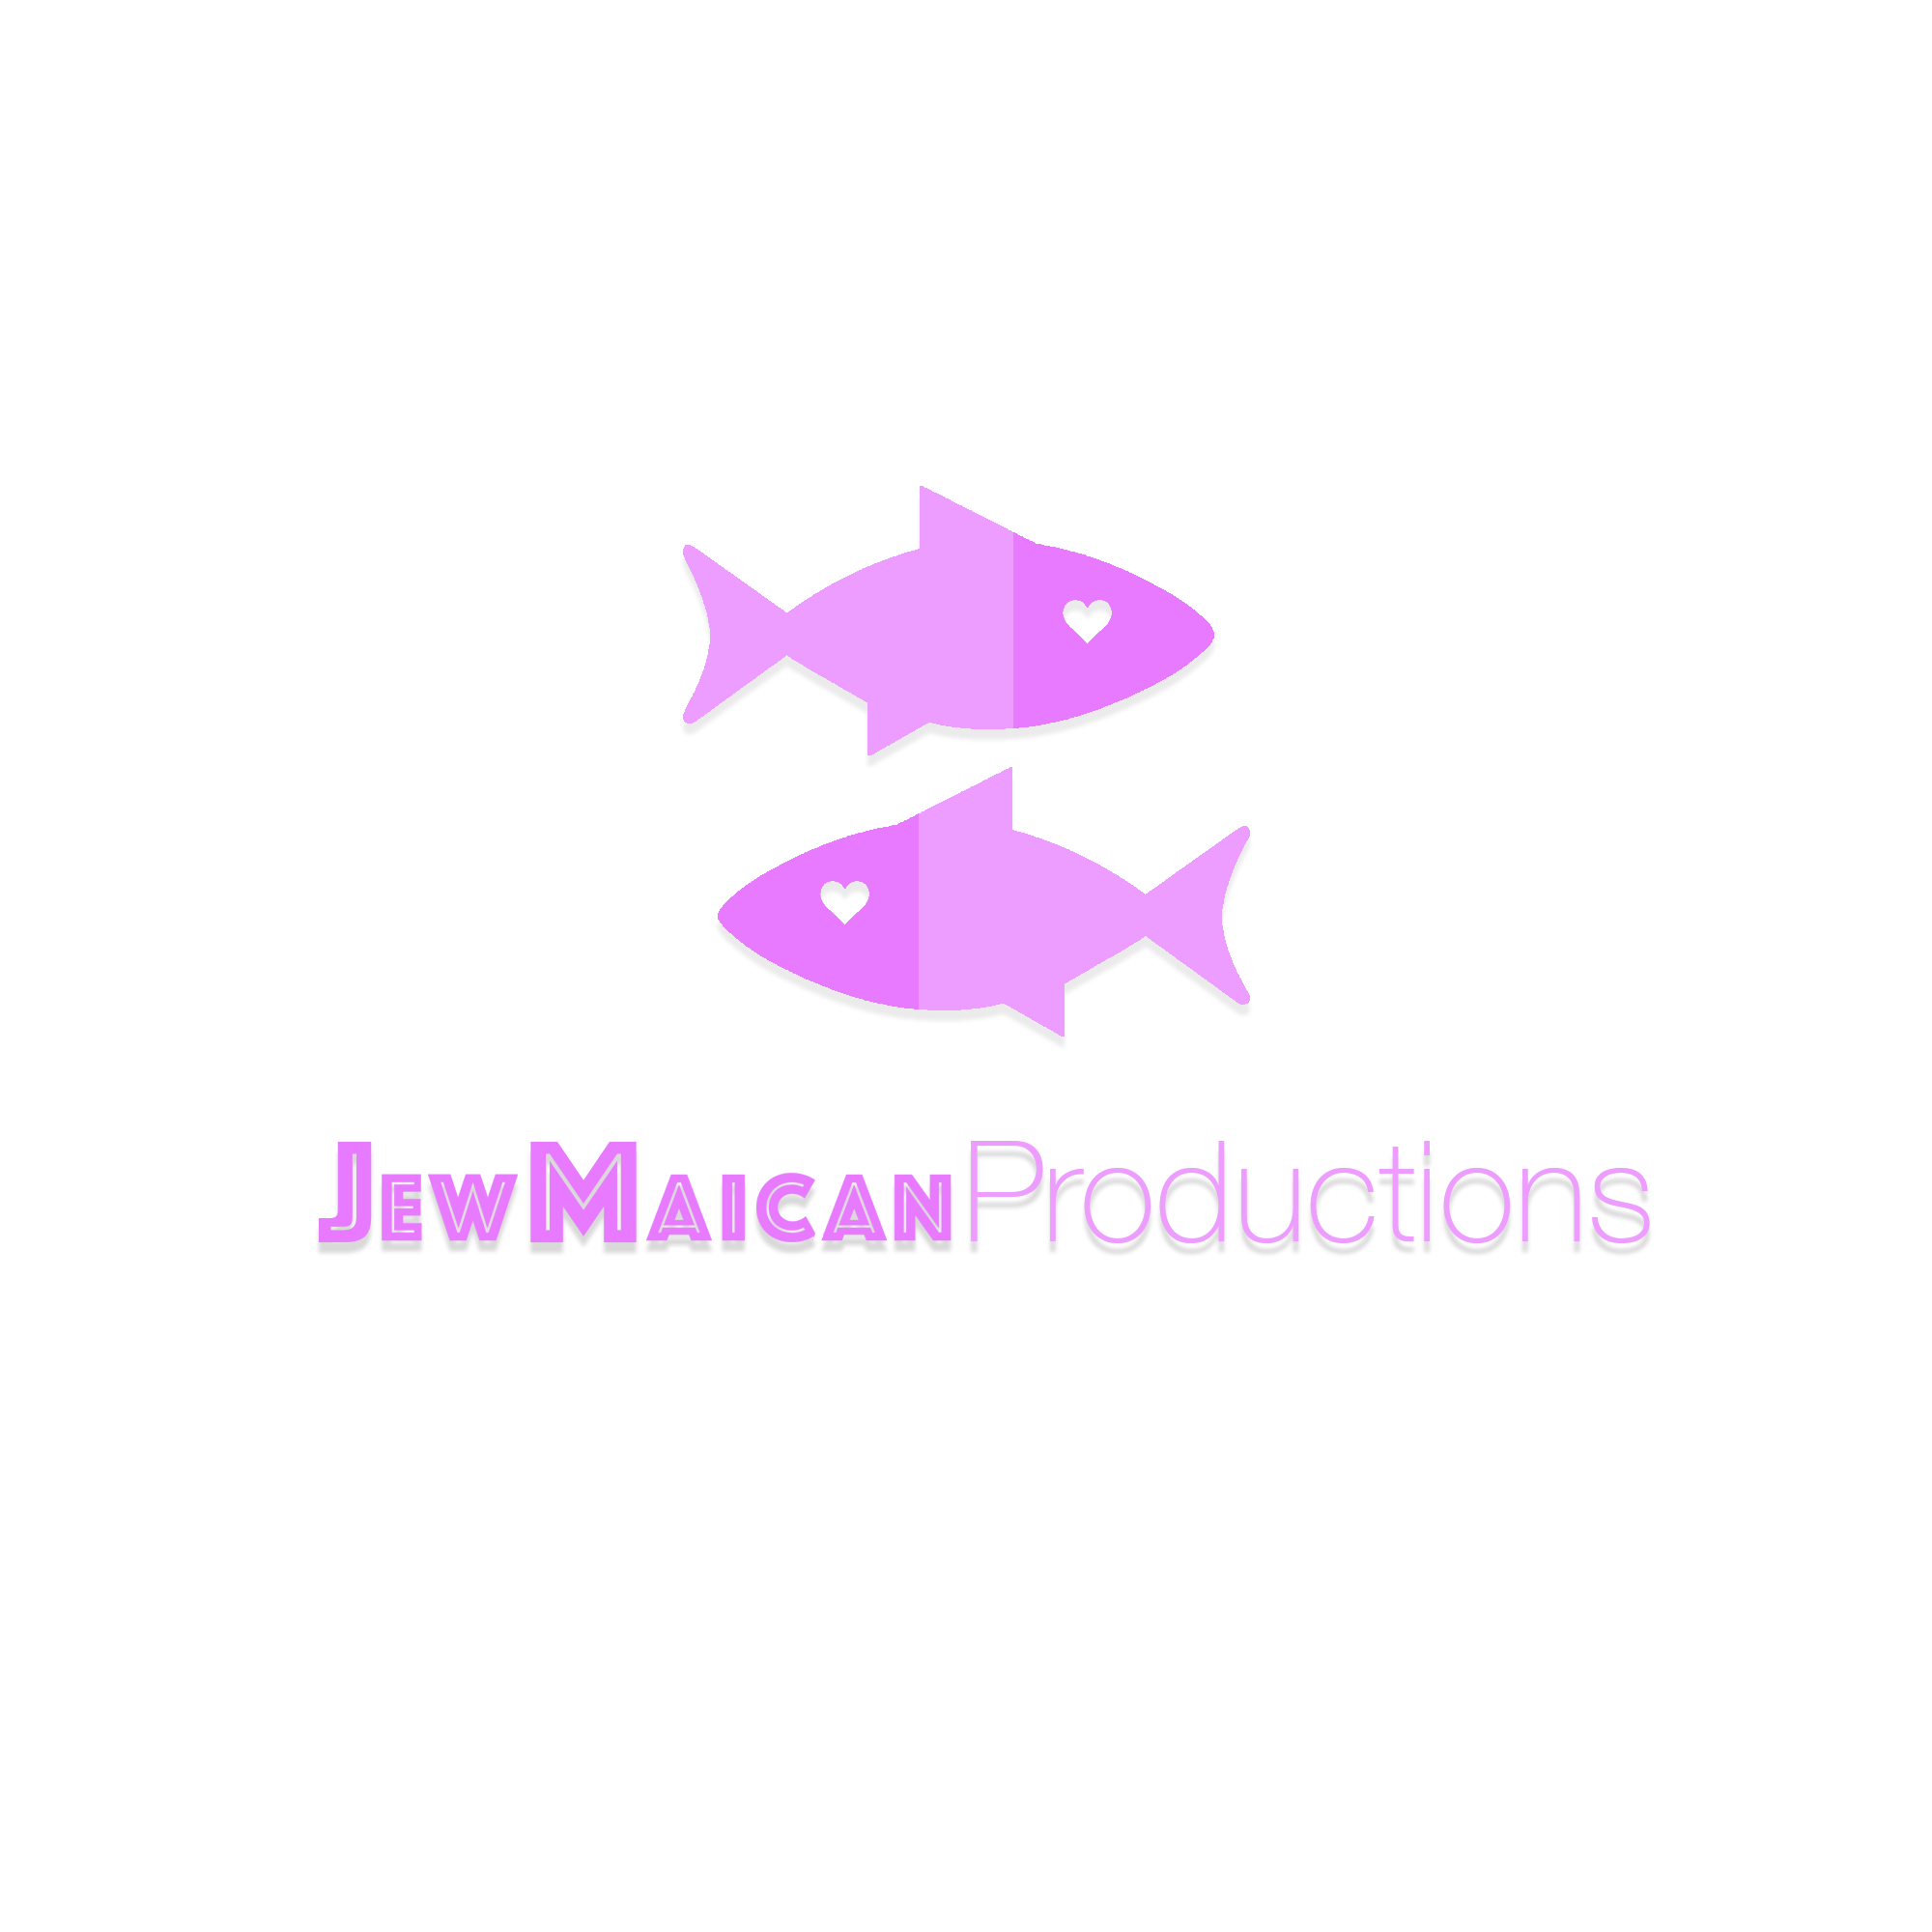 JewMaican Productions Logo